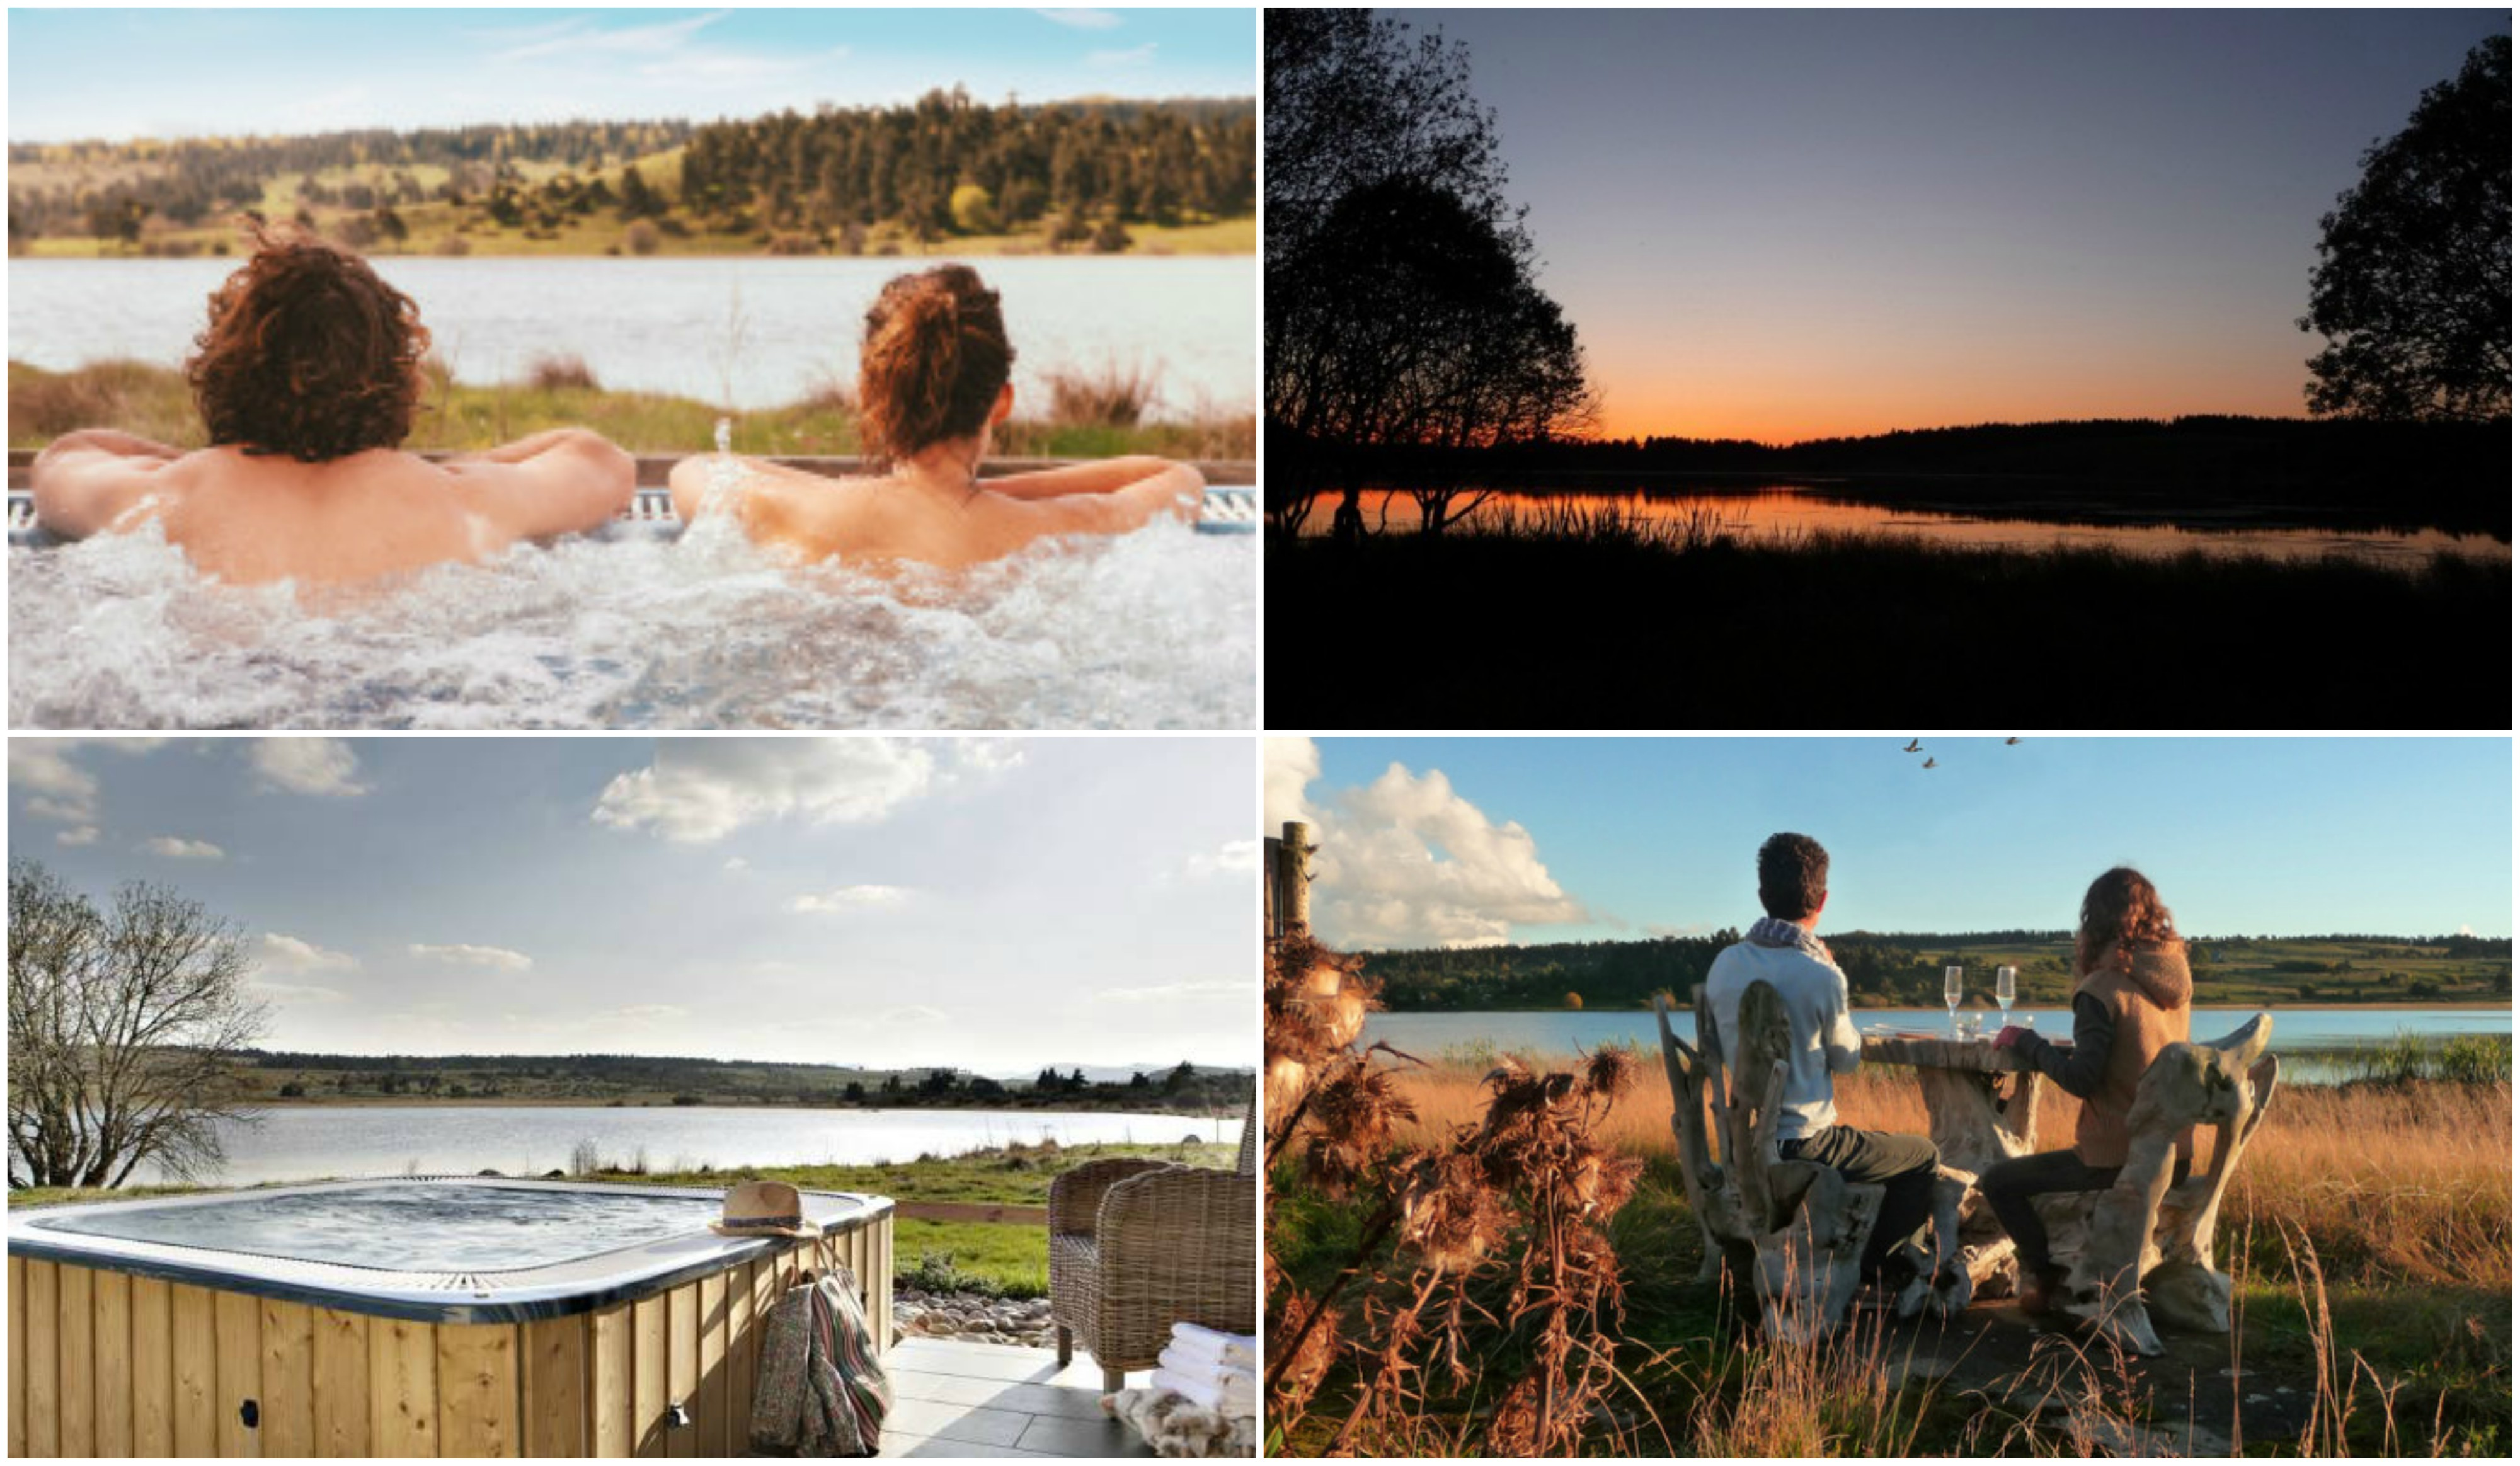 Couple in hot -tub jacuzzi | Sunset over lake | Outdoor hot-tub | Couple sitting at a table drinking wine and looking out over lake